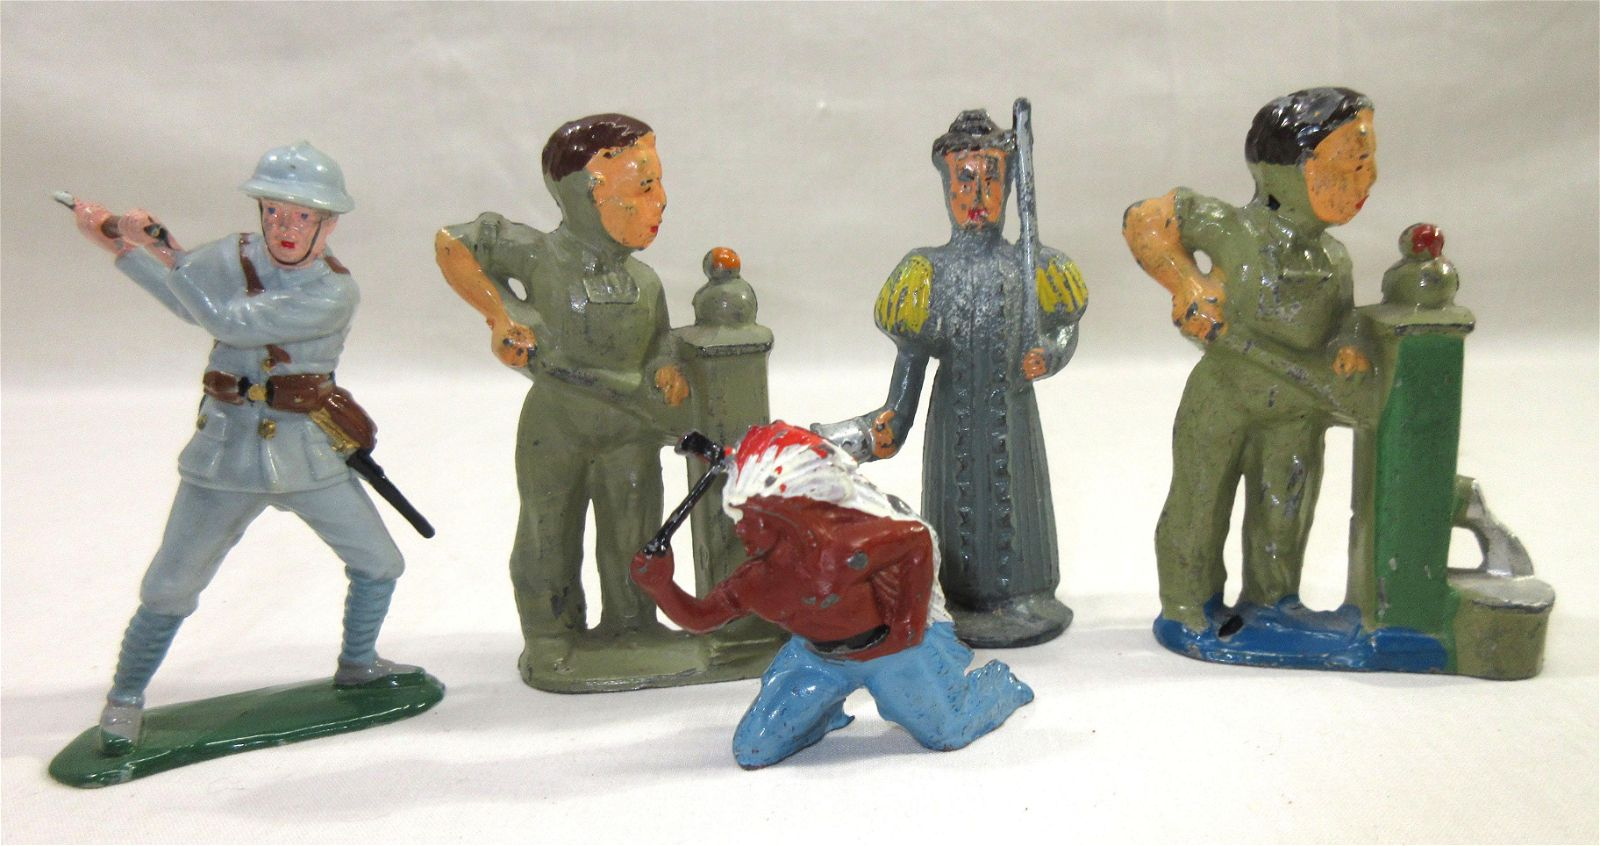 Group of Lead Figures